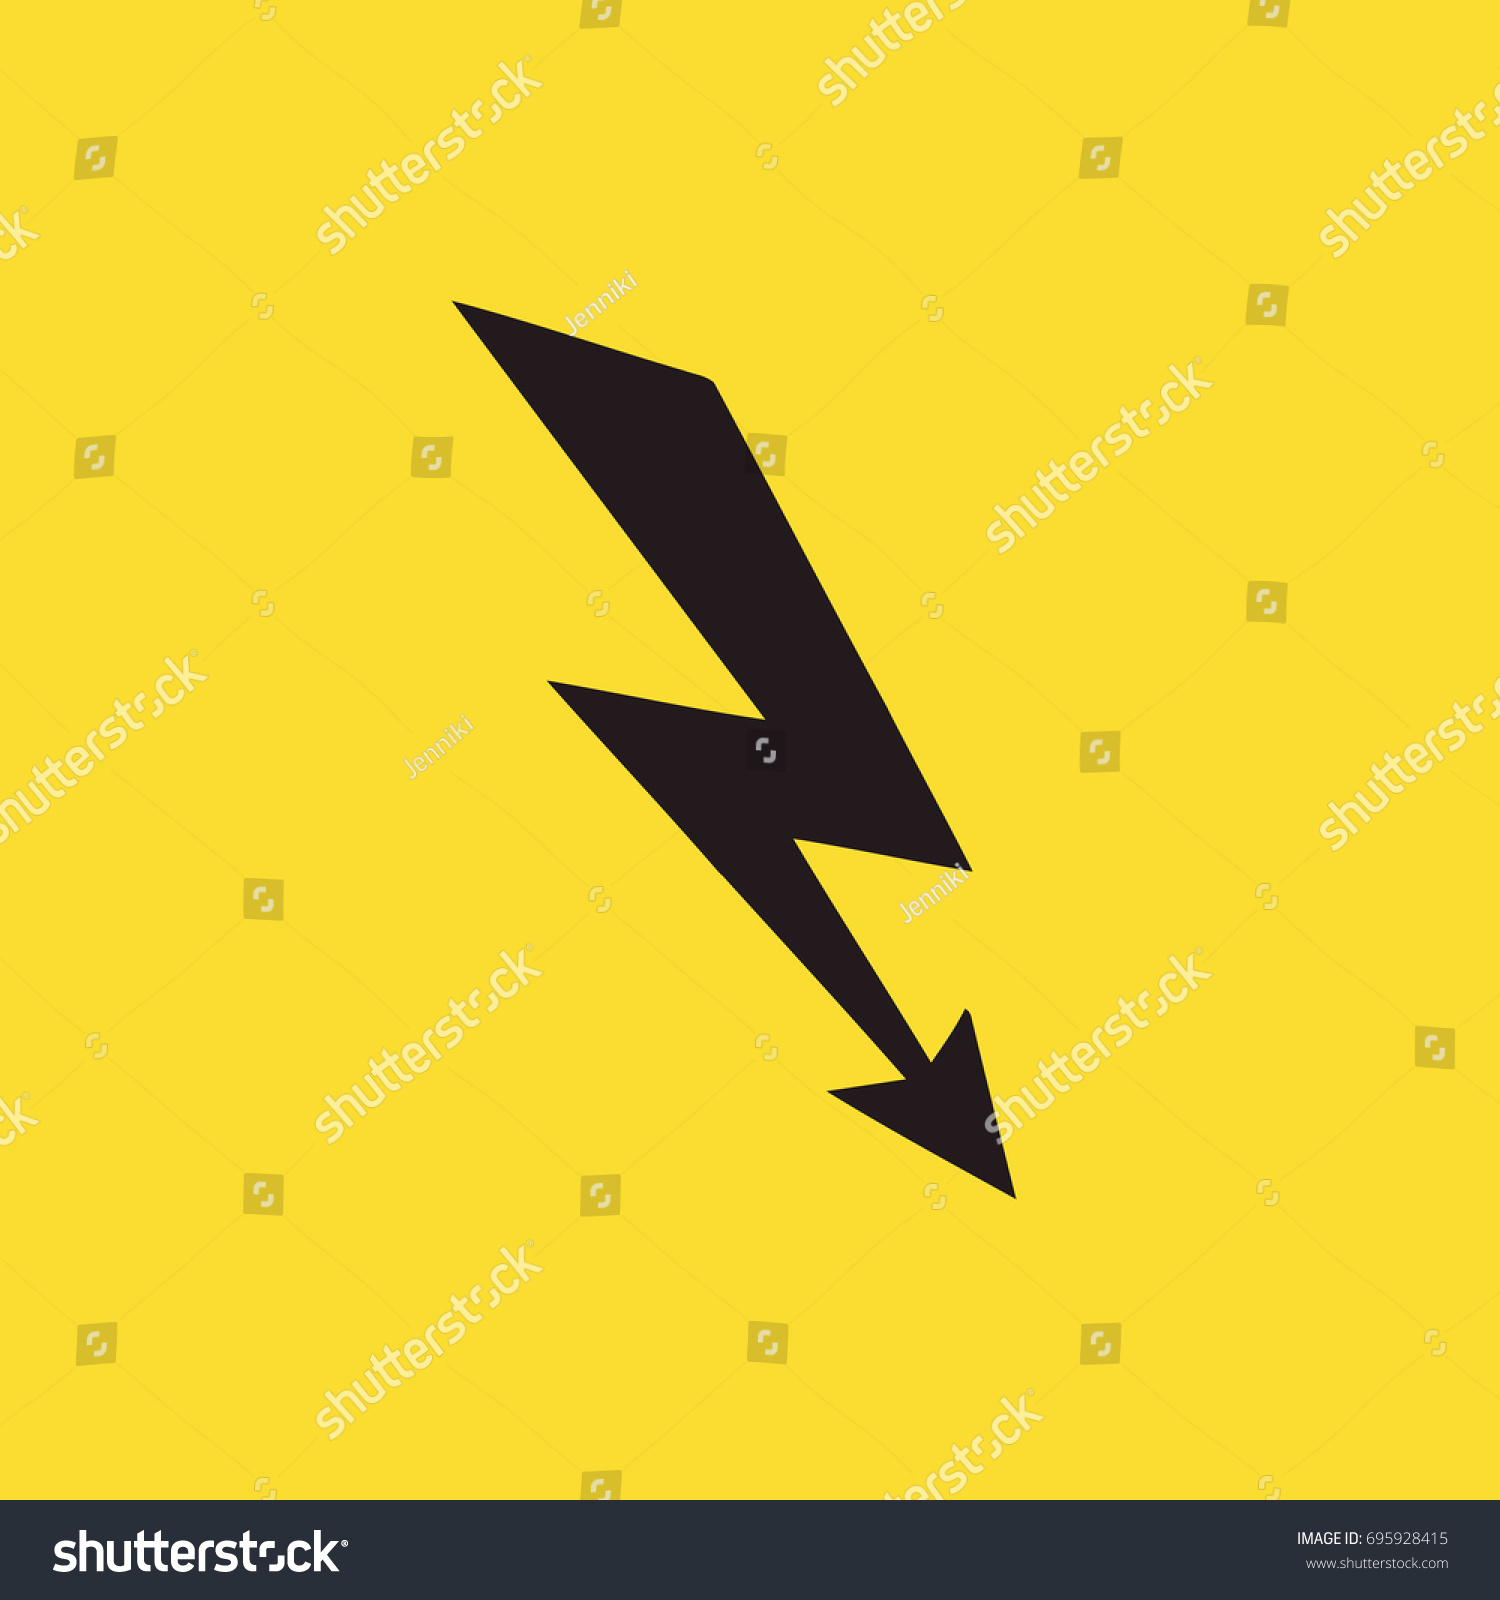 Lightning Bolt Icon Electricity Sign Isolated Stock Vector ... for Electricity Lightning Bolt  150ifm